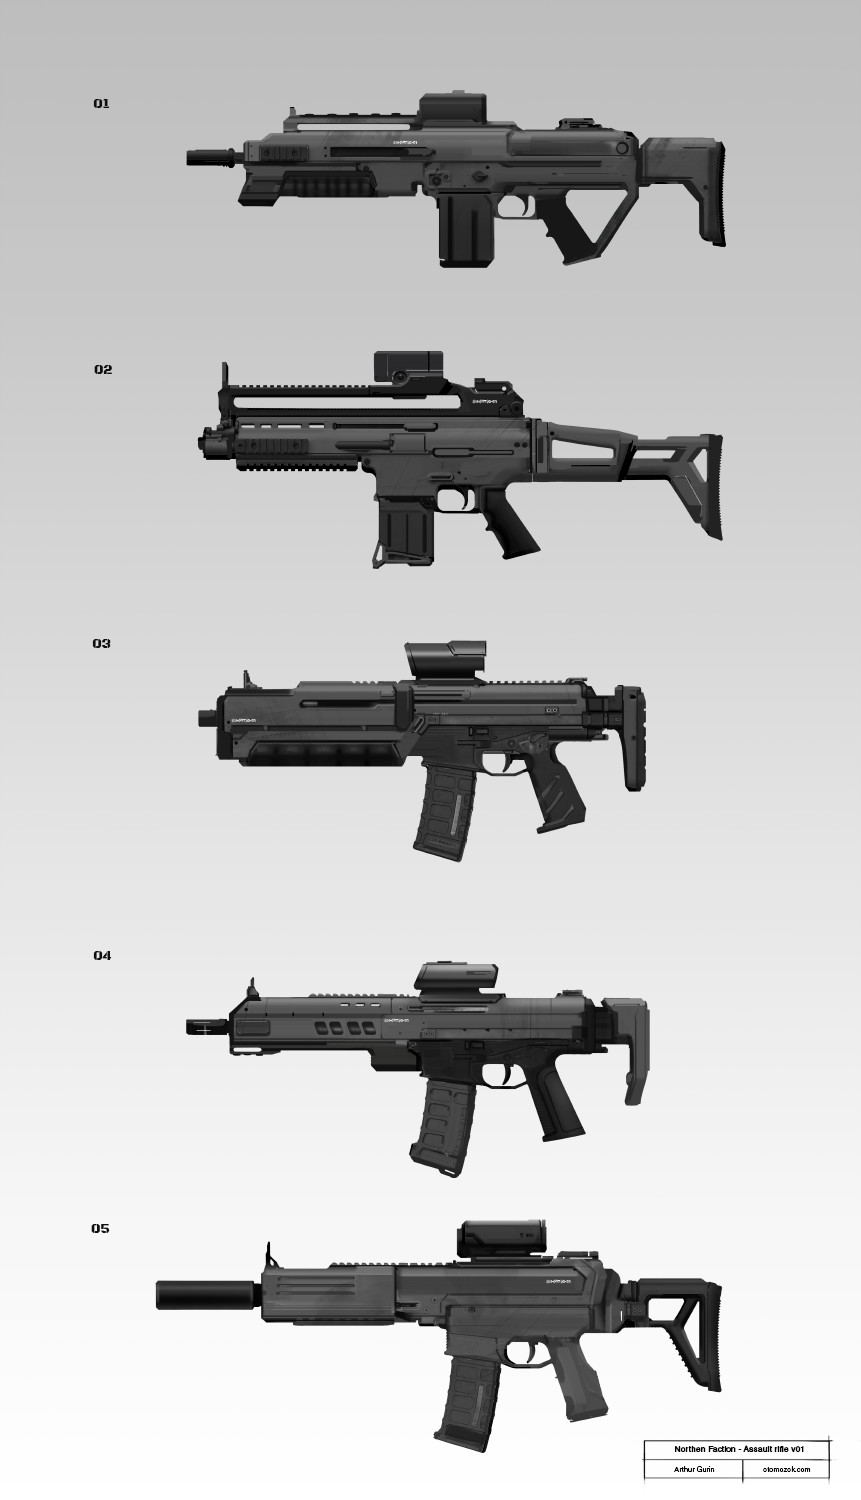 Arthur gurin nfaction rifle sketches